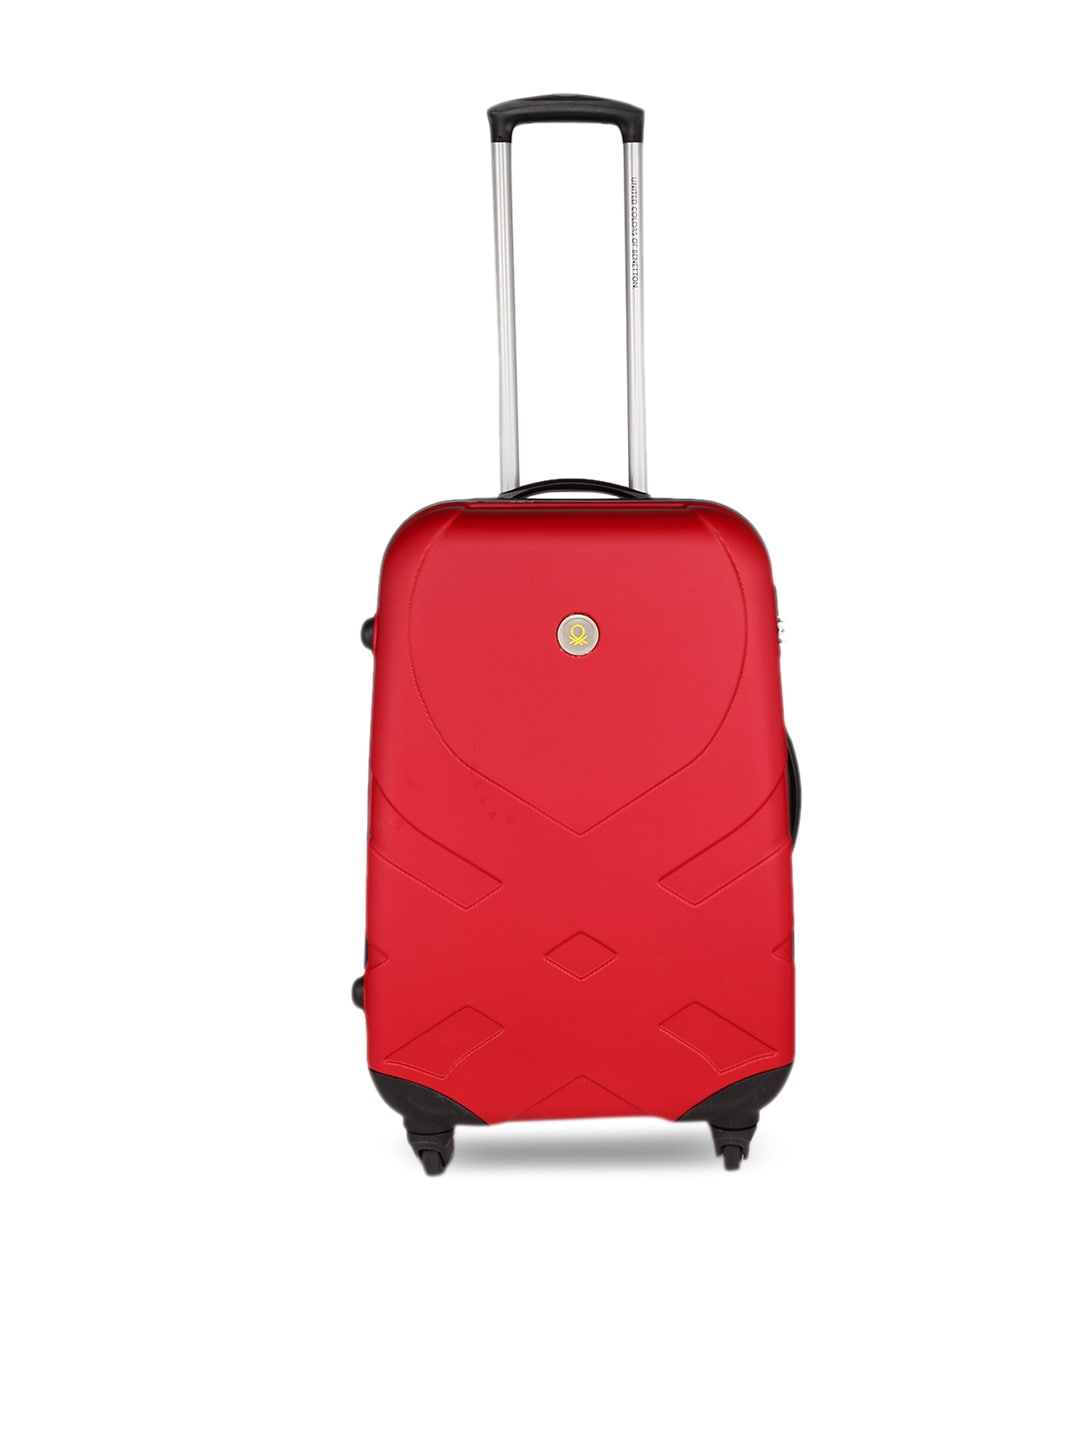 96c1c74f559 Skybags Trolley Bags - Shop Online for Trolley Bag From Skybags